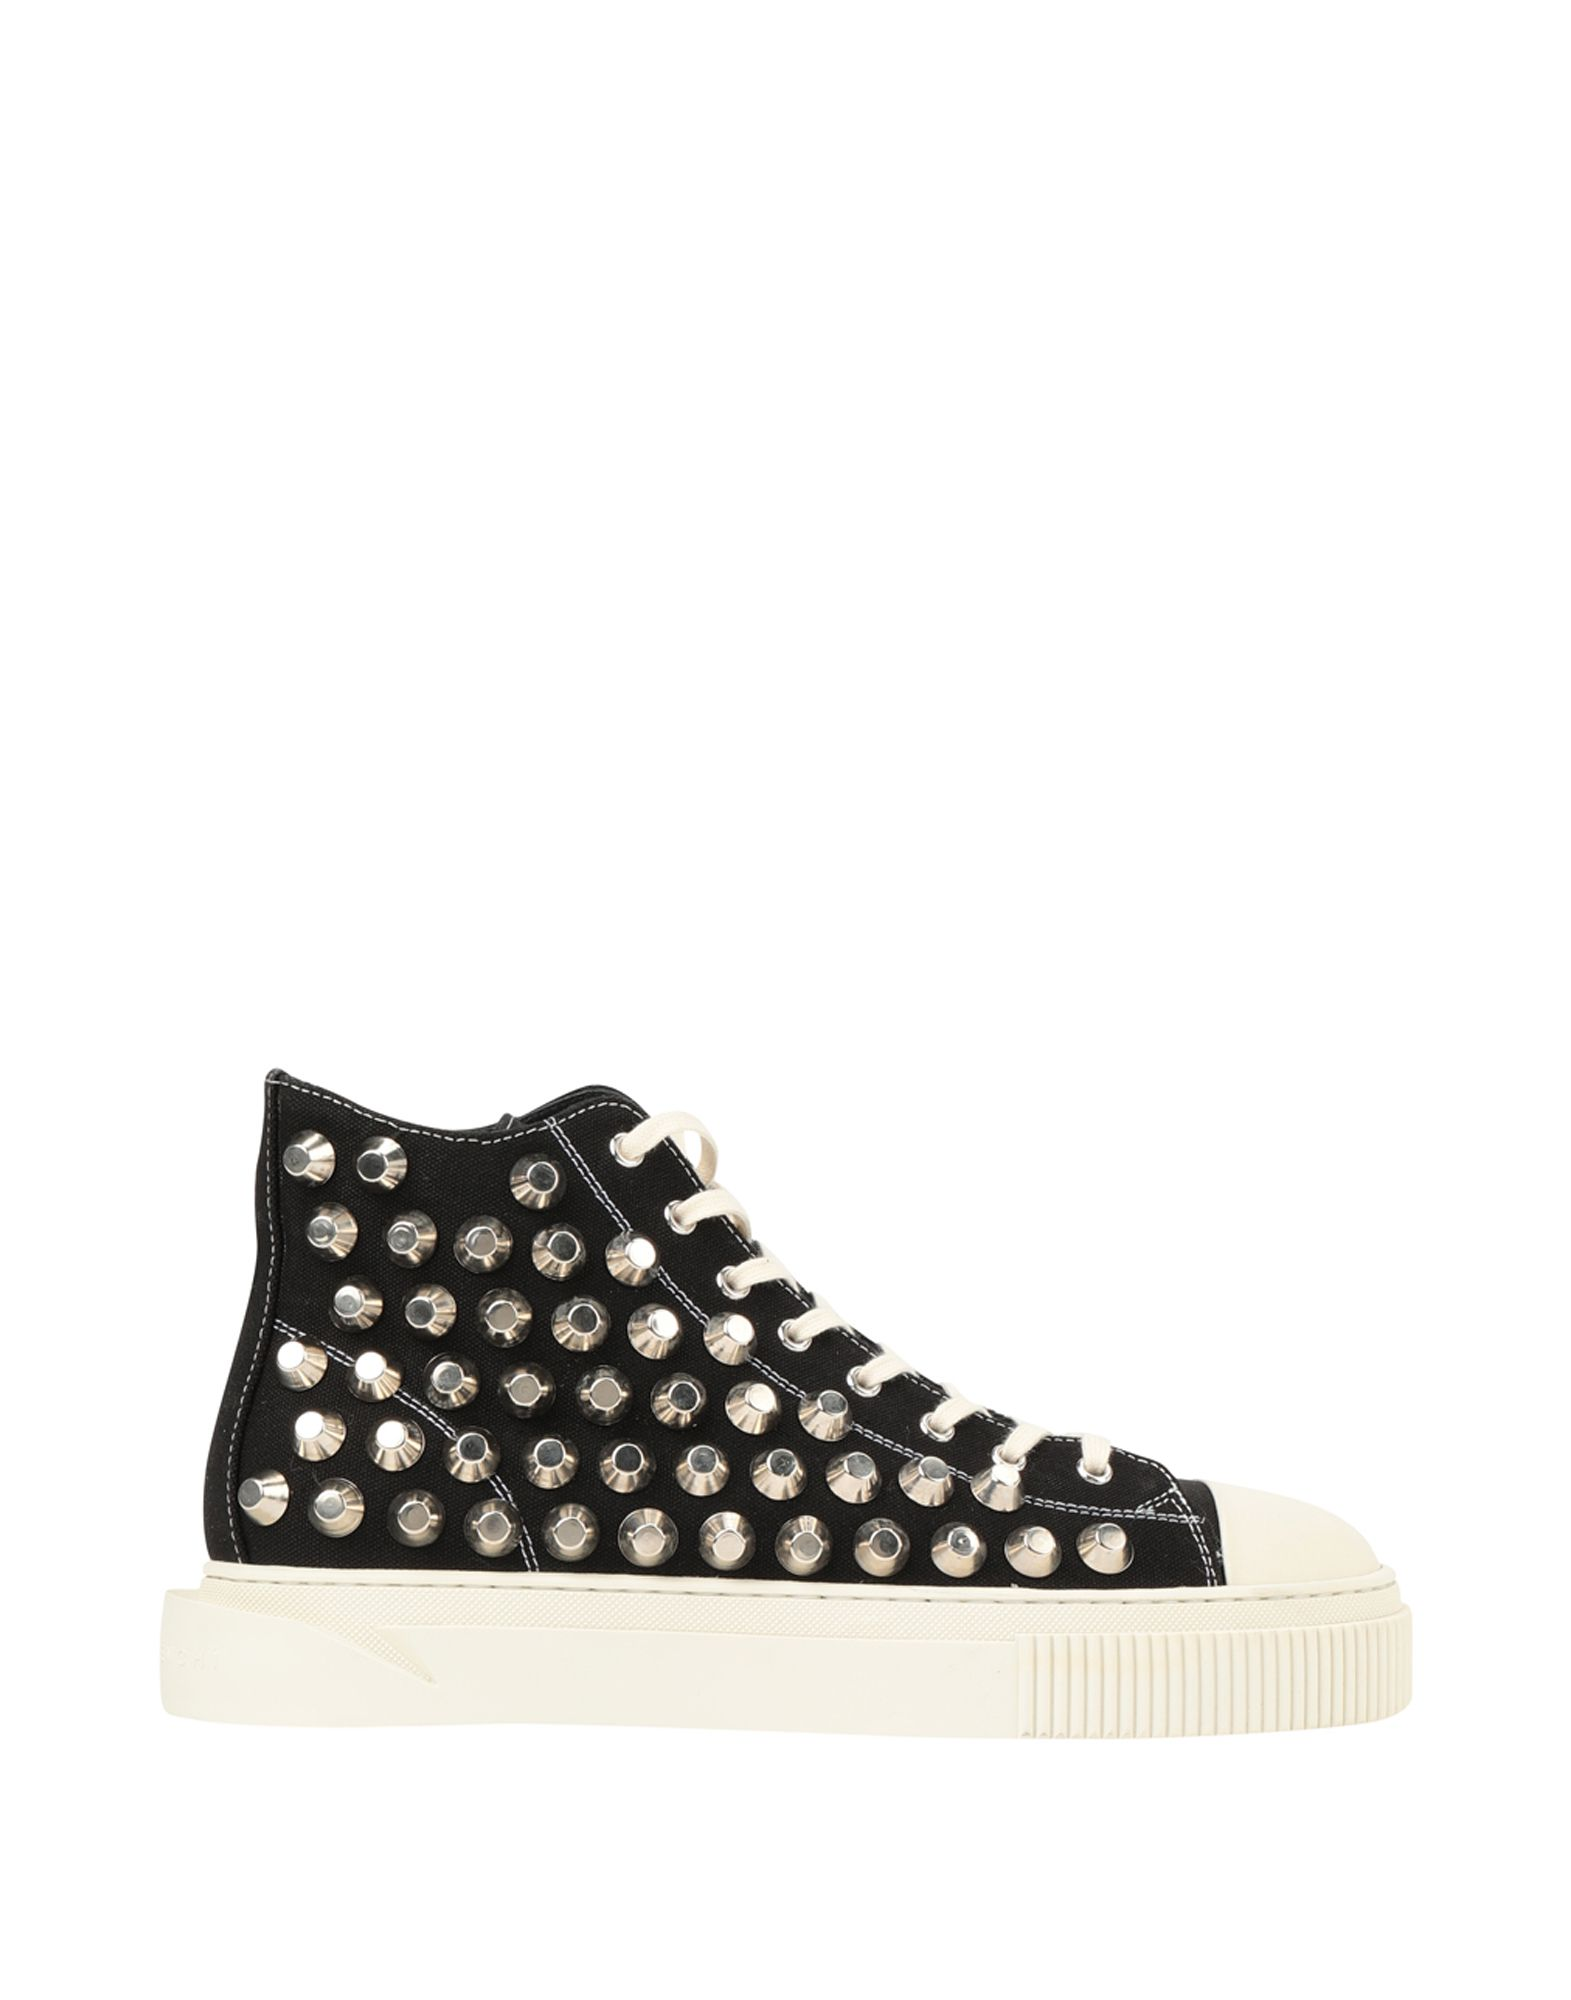 Metalgienchi Jean Michel Hi - Sneakers - Men  Metalgienchi Sneakers online on  Men United Kingdom - 11540208UT 3cadaf